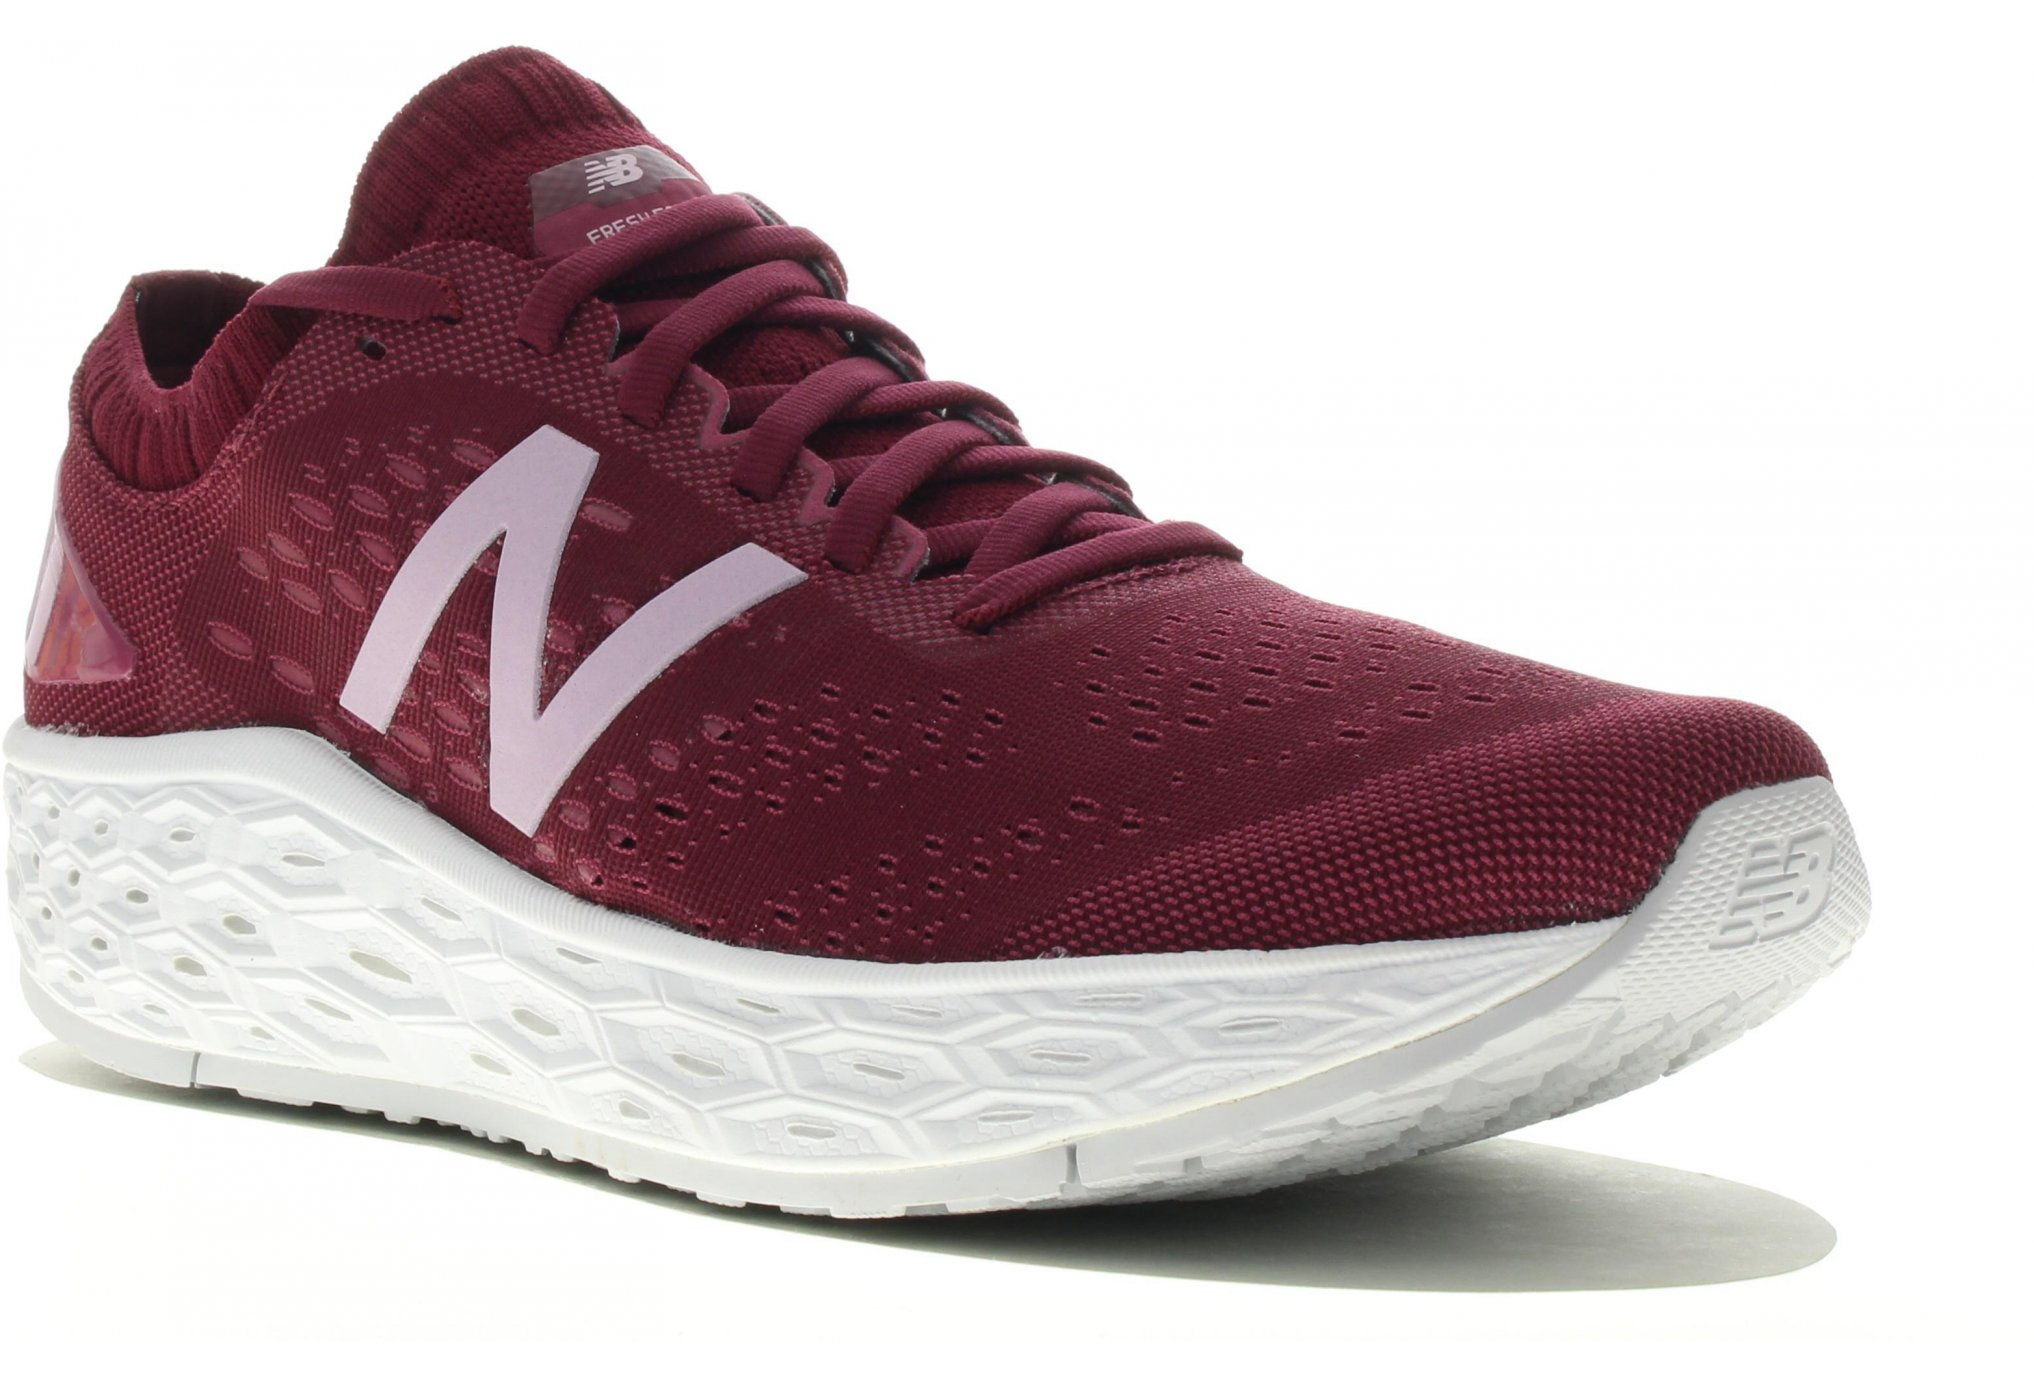 New Balance Fresh Foam Vongo V4 Chaussures running femme